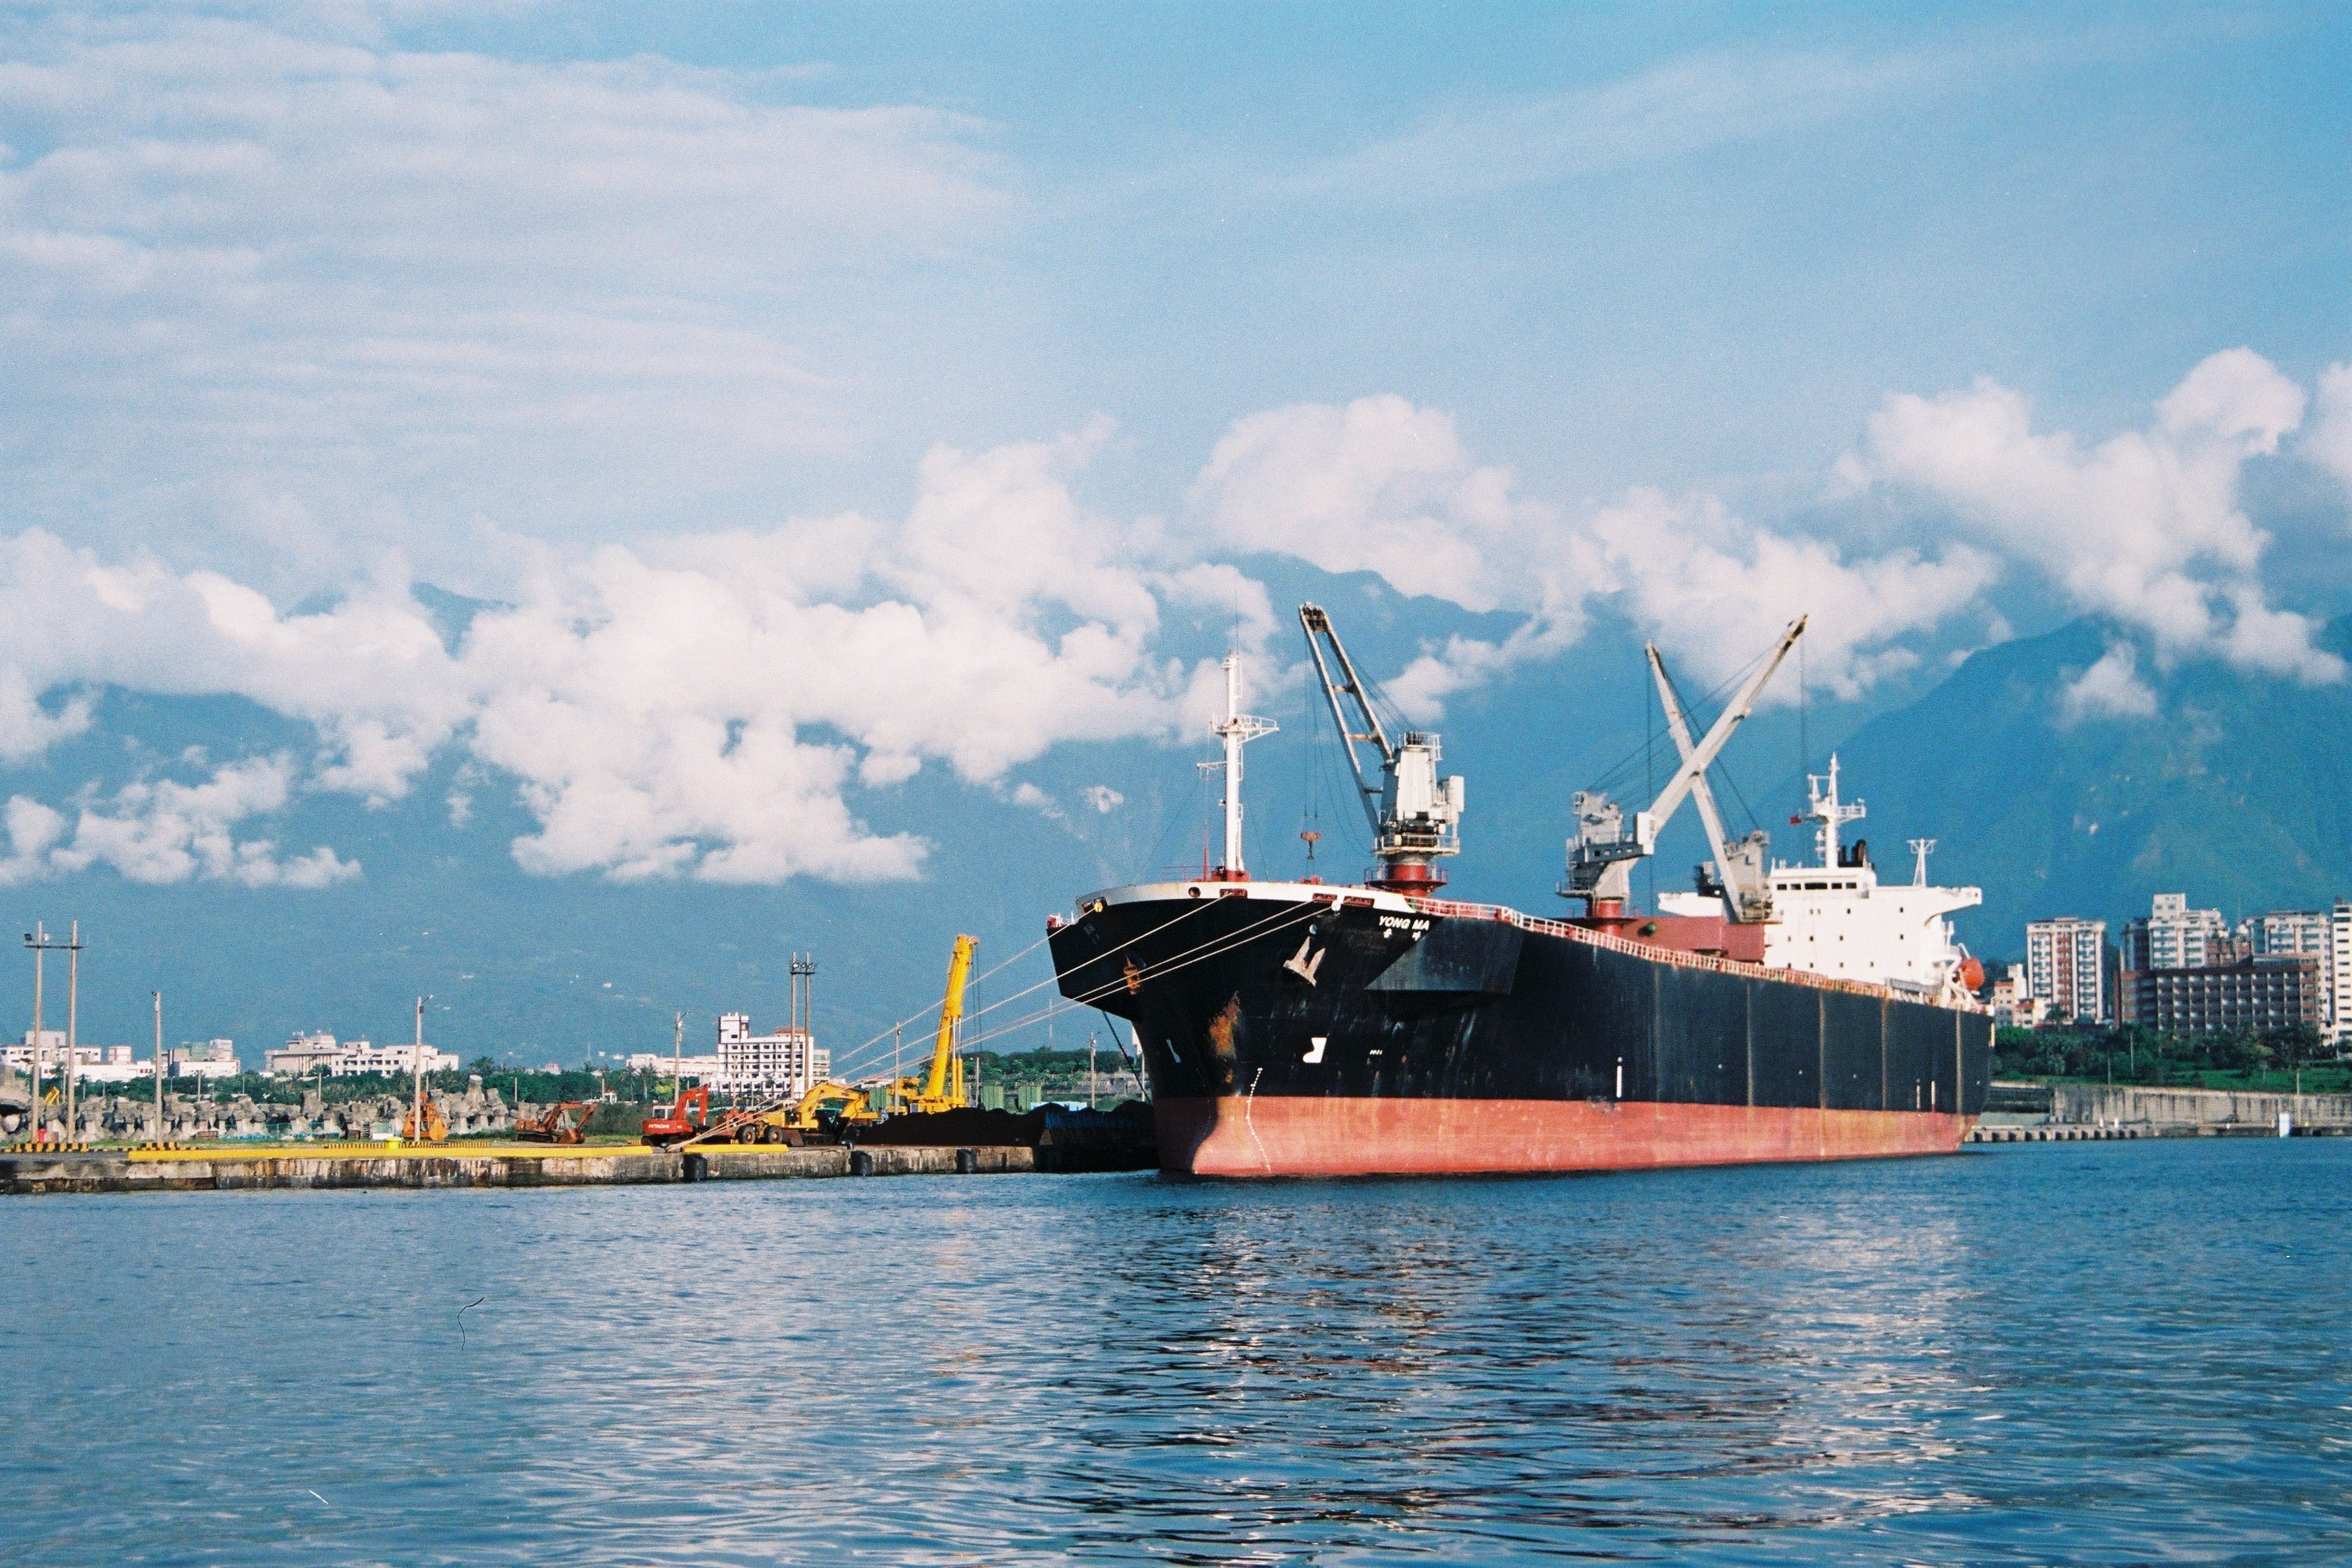 Free stock photo of cargo ship, city, cityscape, clouds